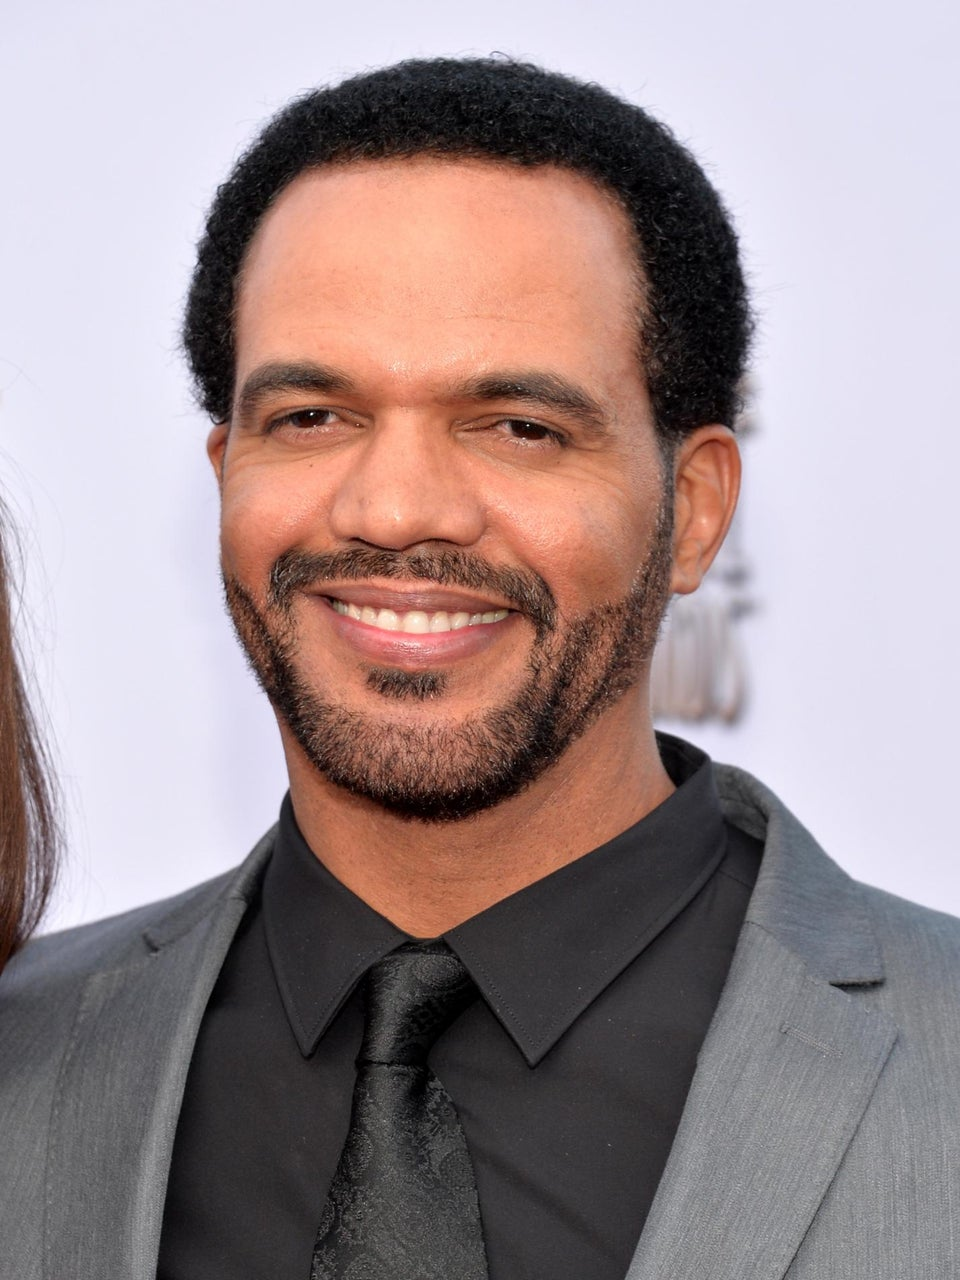 'Young And The Restless' Star Kristoff St. John Laid To Rest Beside His Late Son